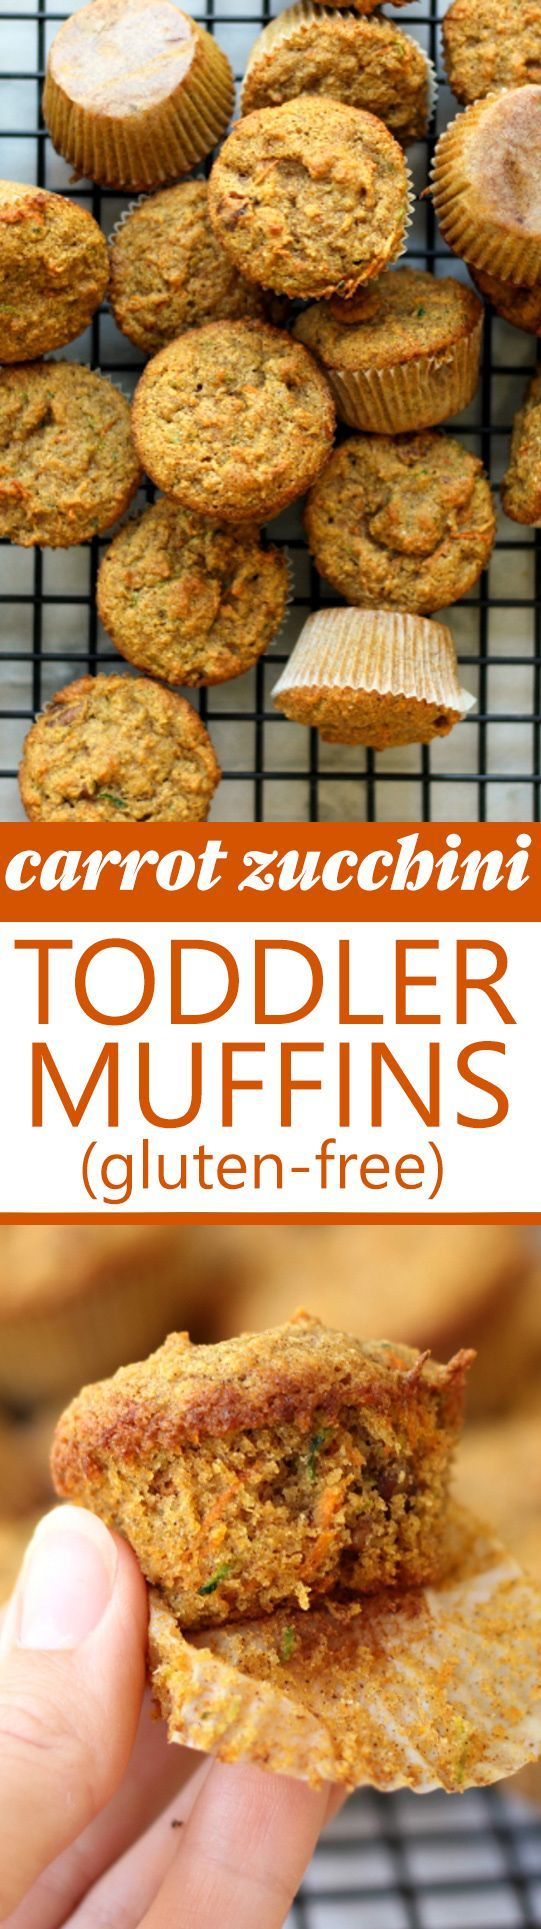 Carrot Zucchini Toddler Muffins! Gluten-free, lightly sweet and full of hidden veggies. A delicious healthy toddler or kid snack!